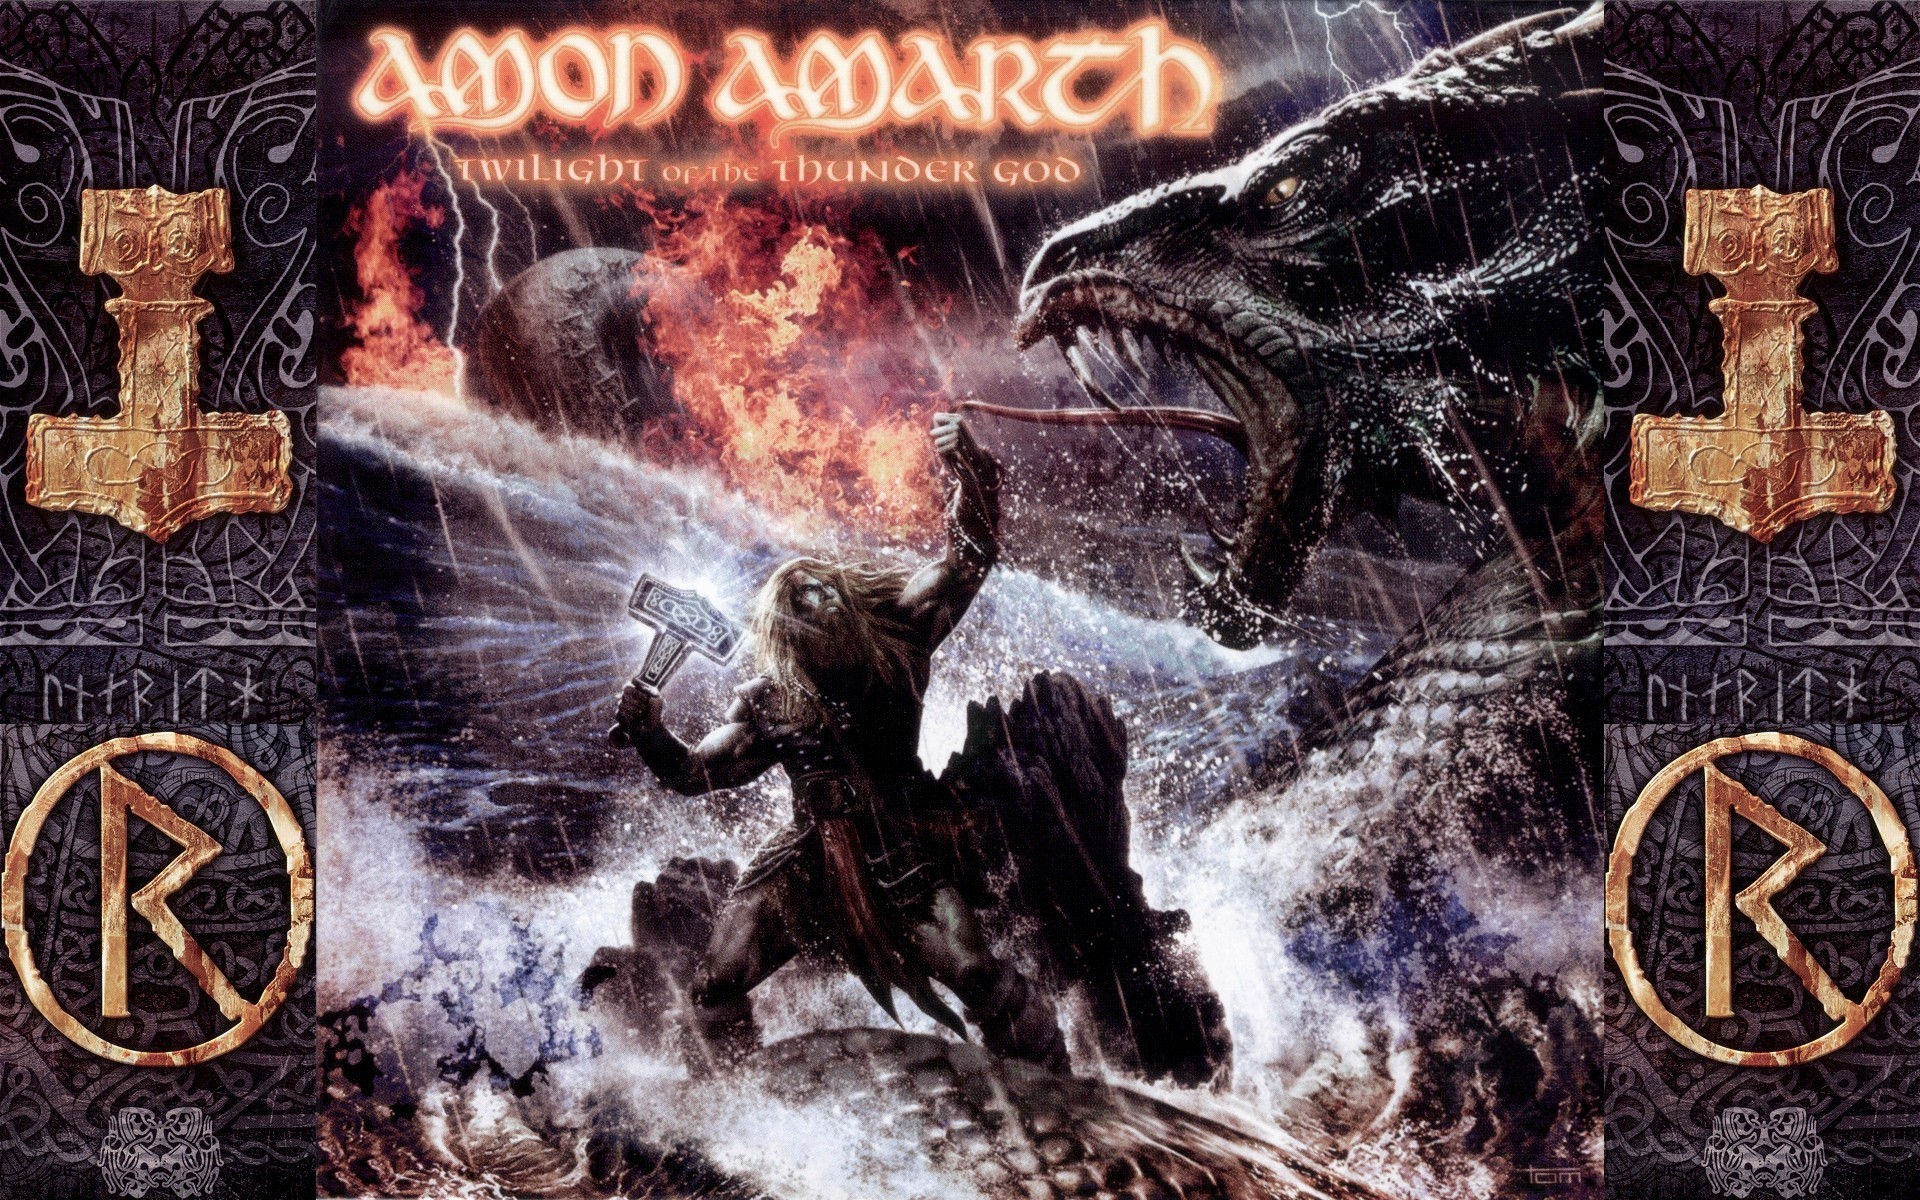 music, Metal Music, Amon Amarth, Vikings, Heavy Metal, Fire, Dragon, Thor, Hammer  Wallpapers HD / Desktop and Mobile Backgrounds